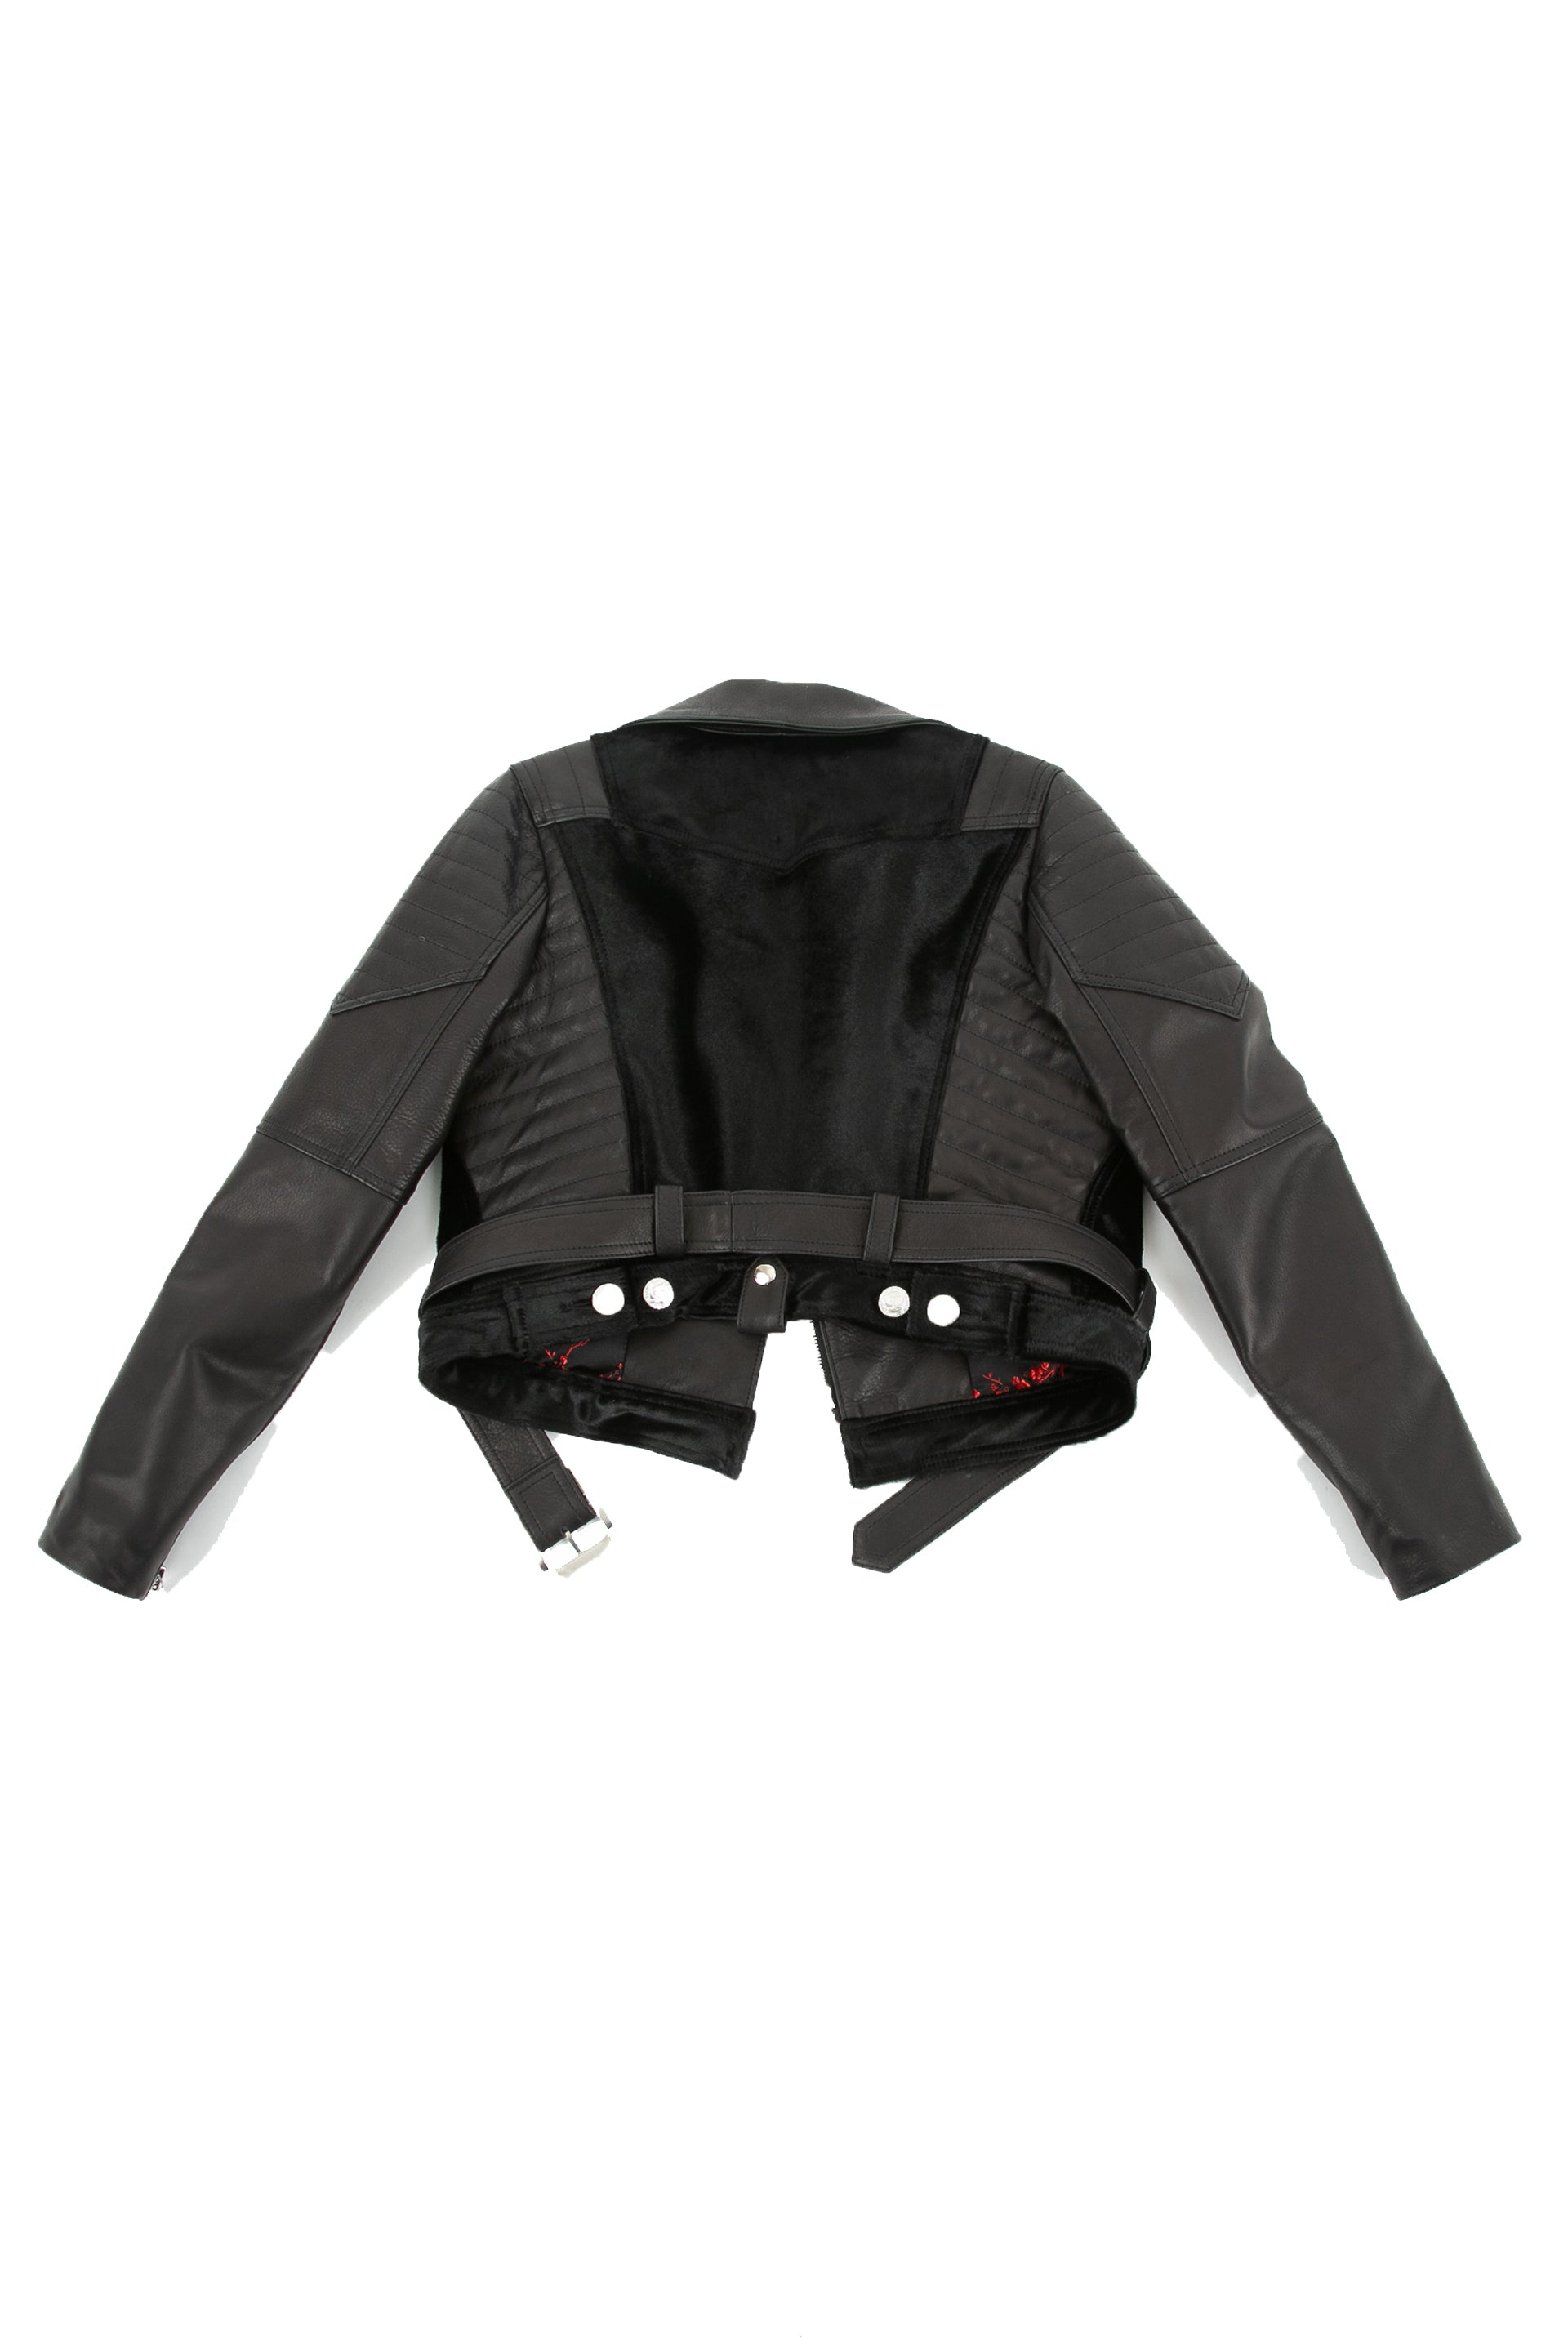 Back of The Widowmaker leather jacket